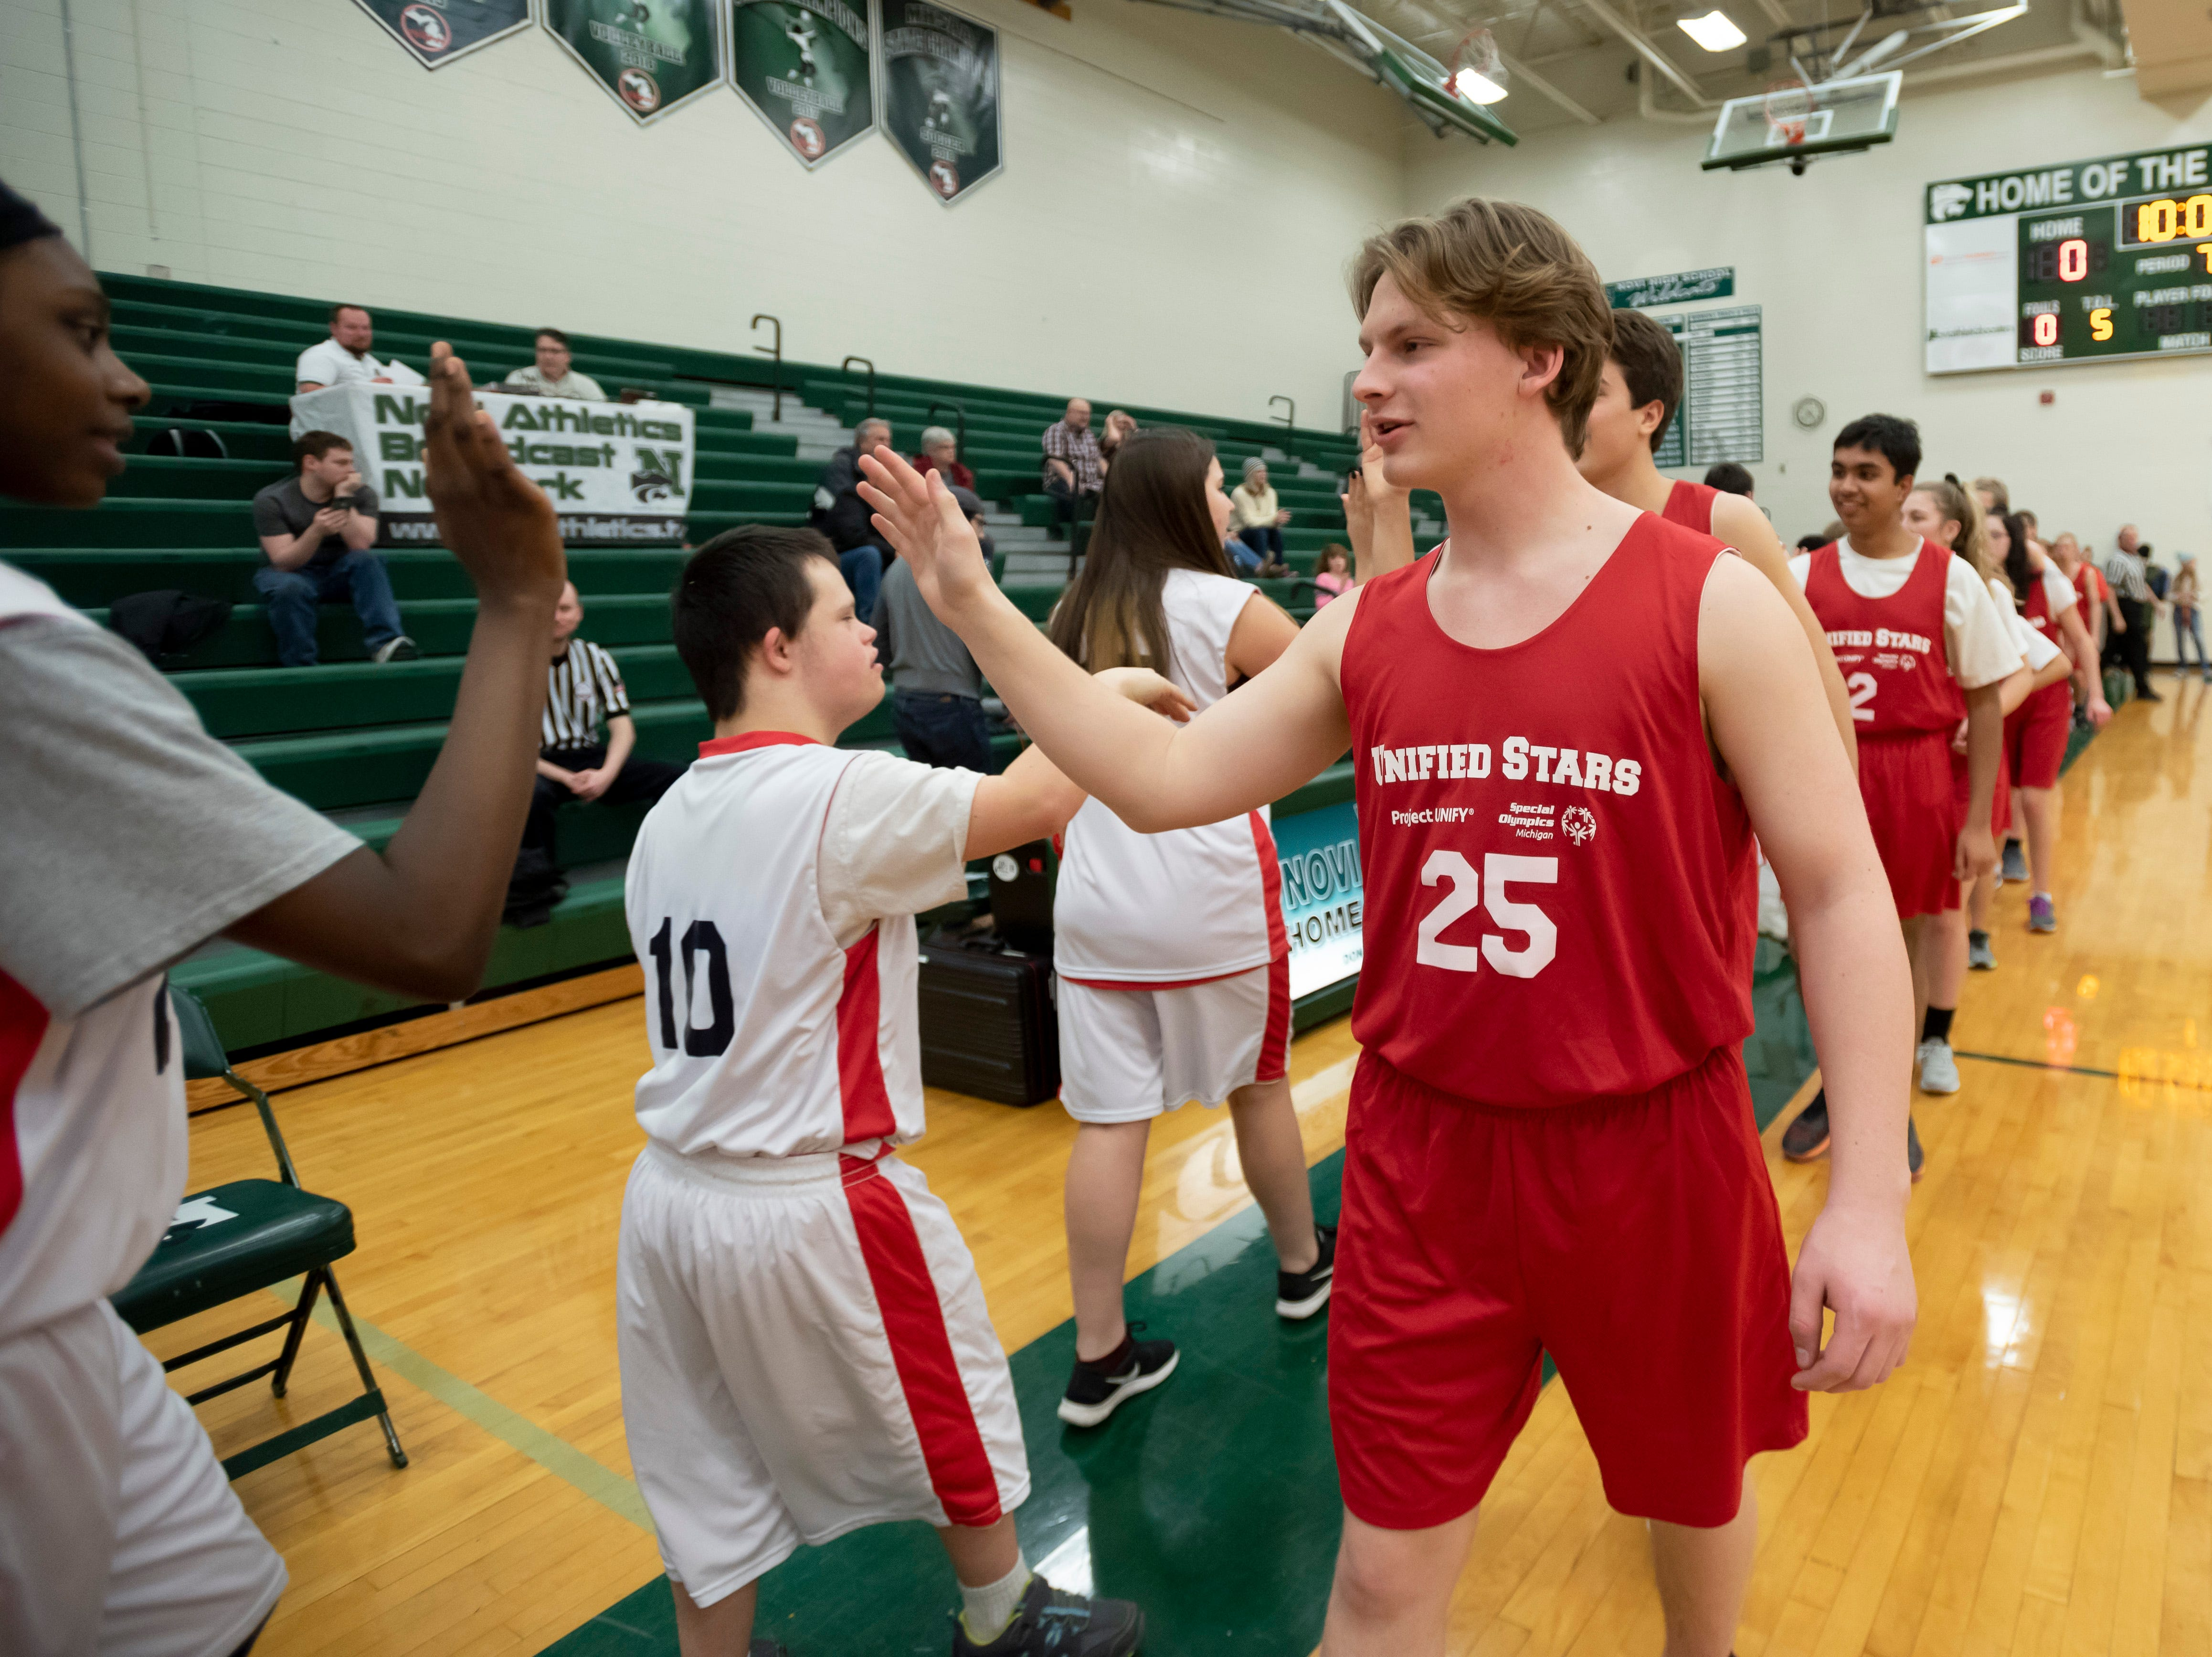 Plymouth-Canton's Eric Unruh high fives the players from Livonia Franklin after a game.